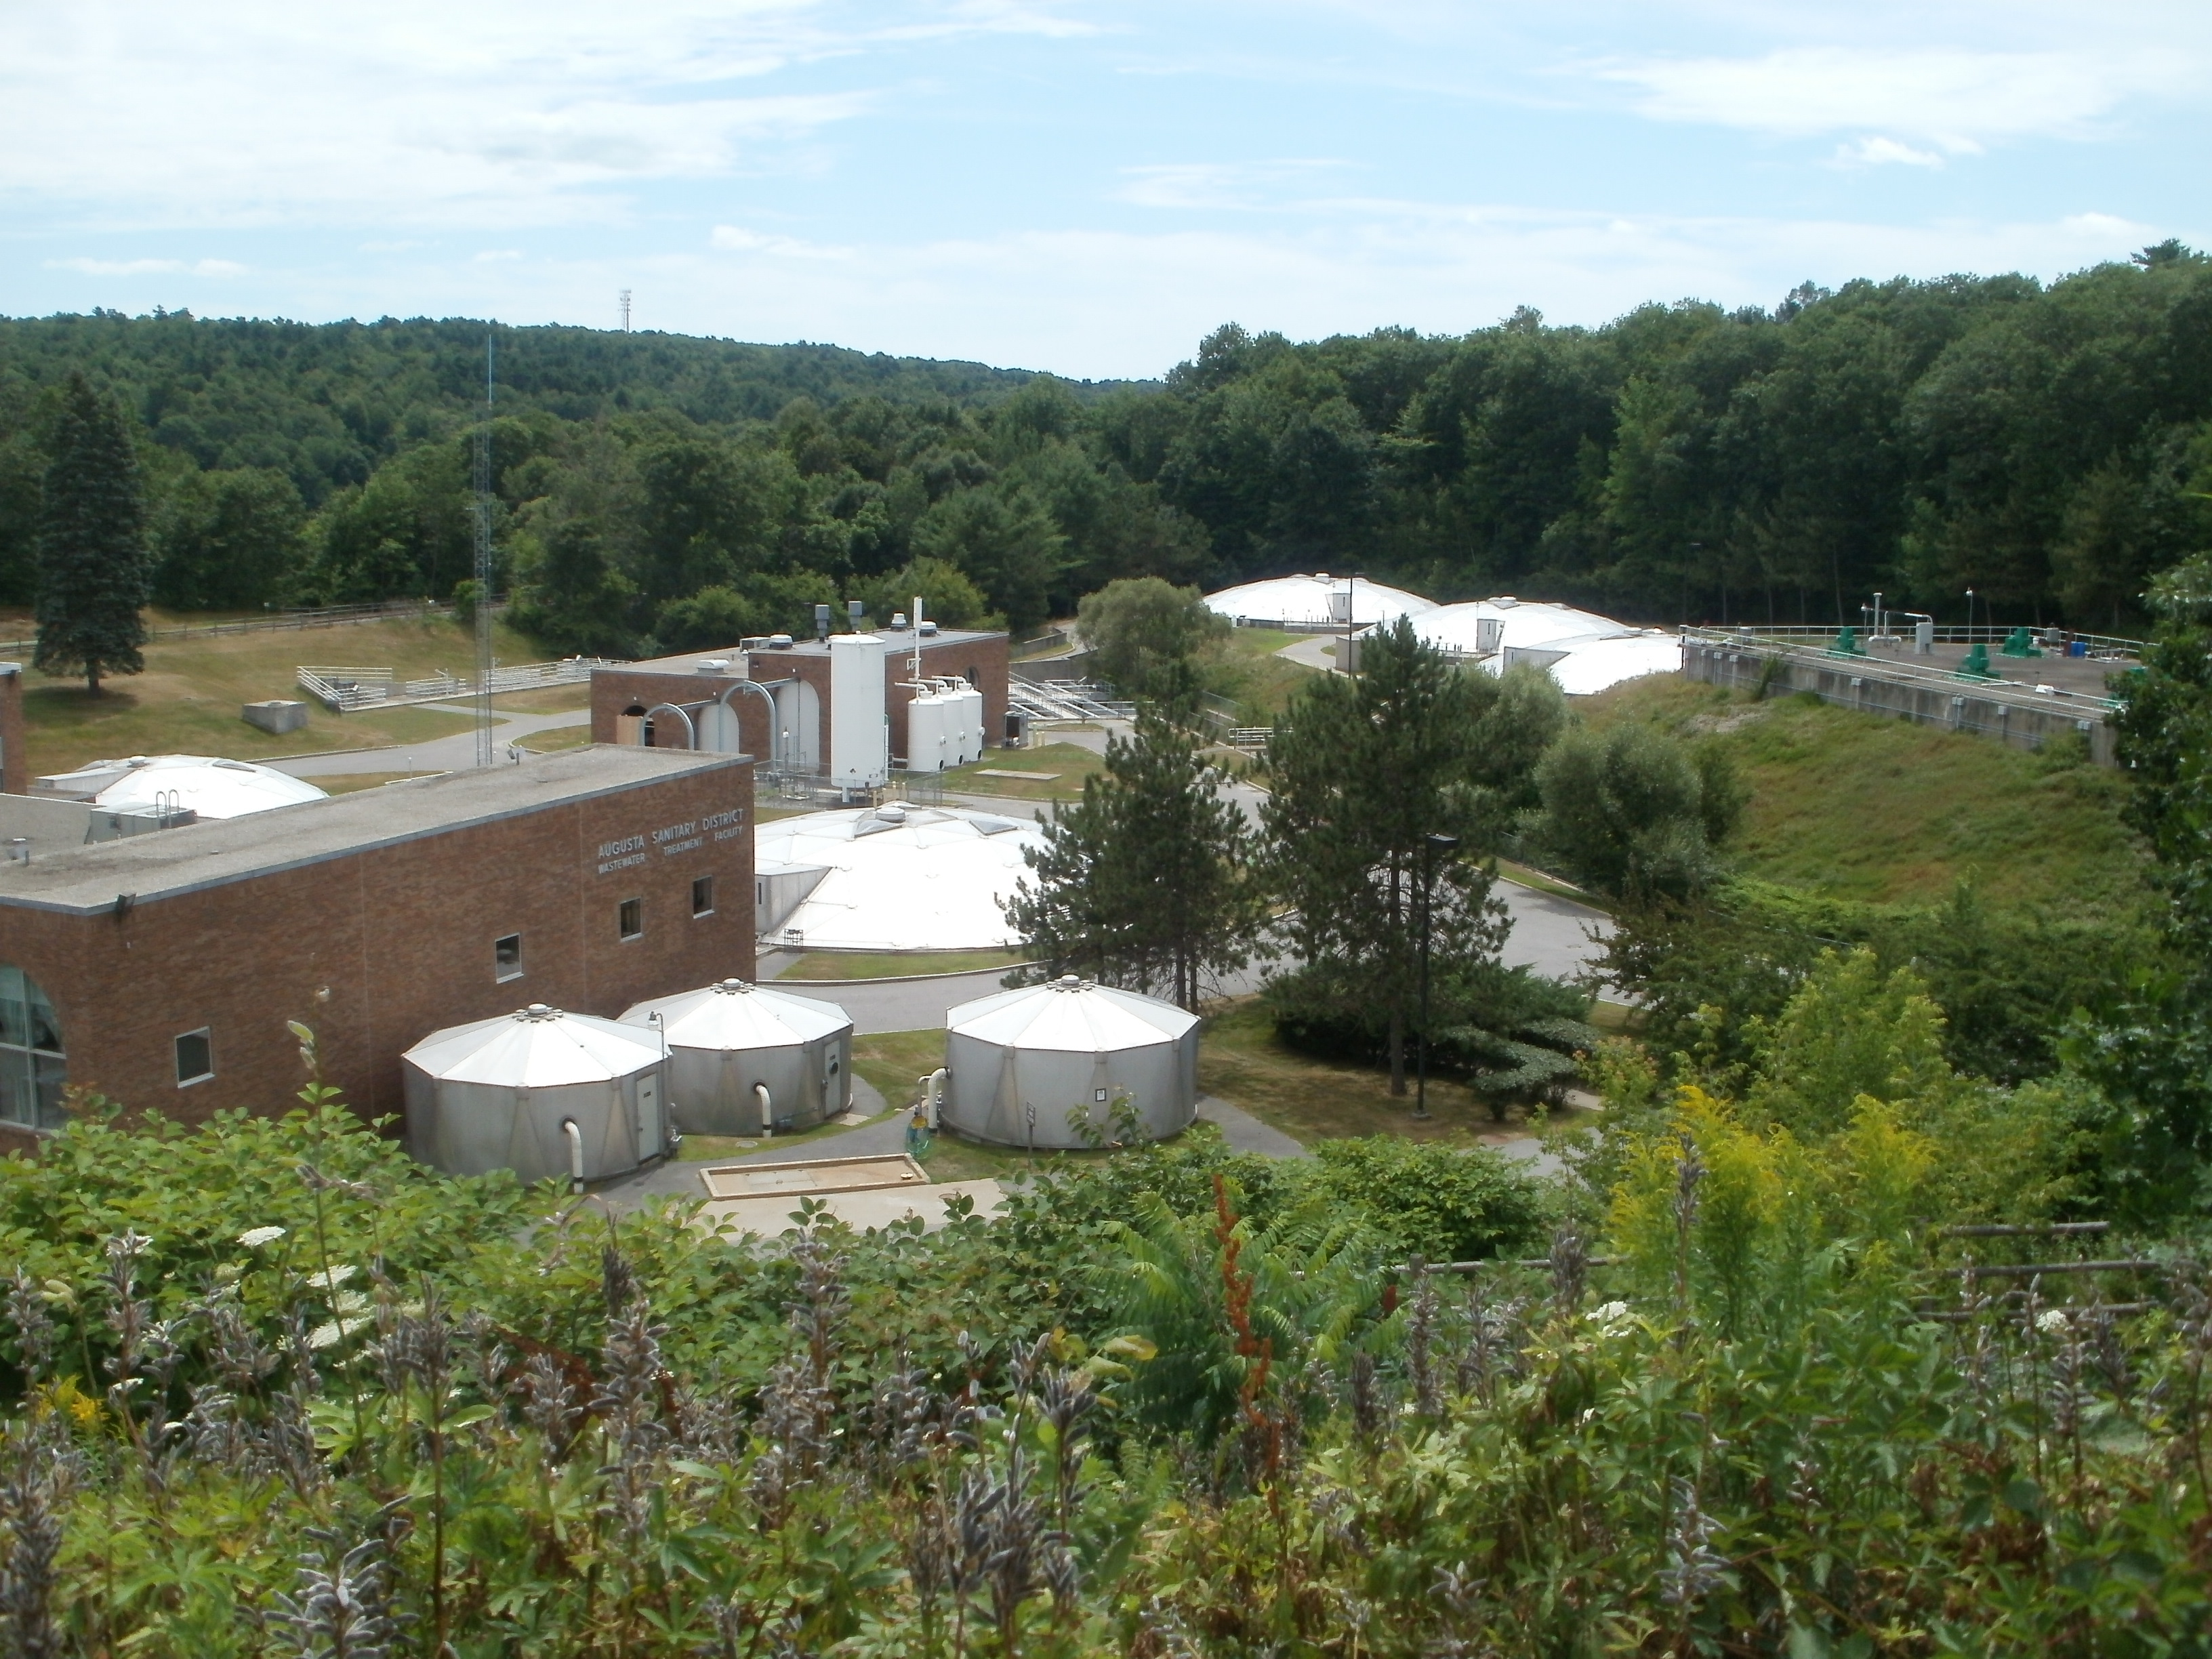 GAUD Wastewater Treatment Plant